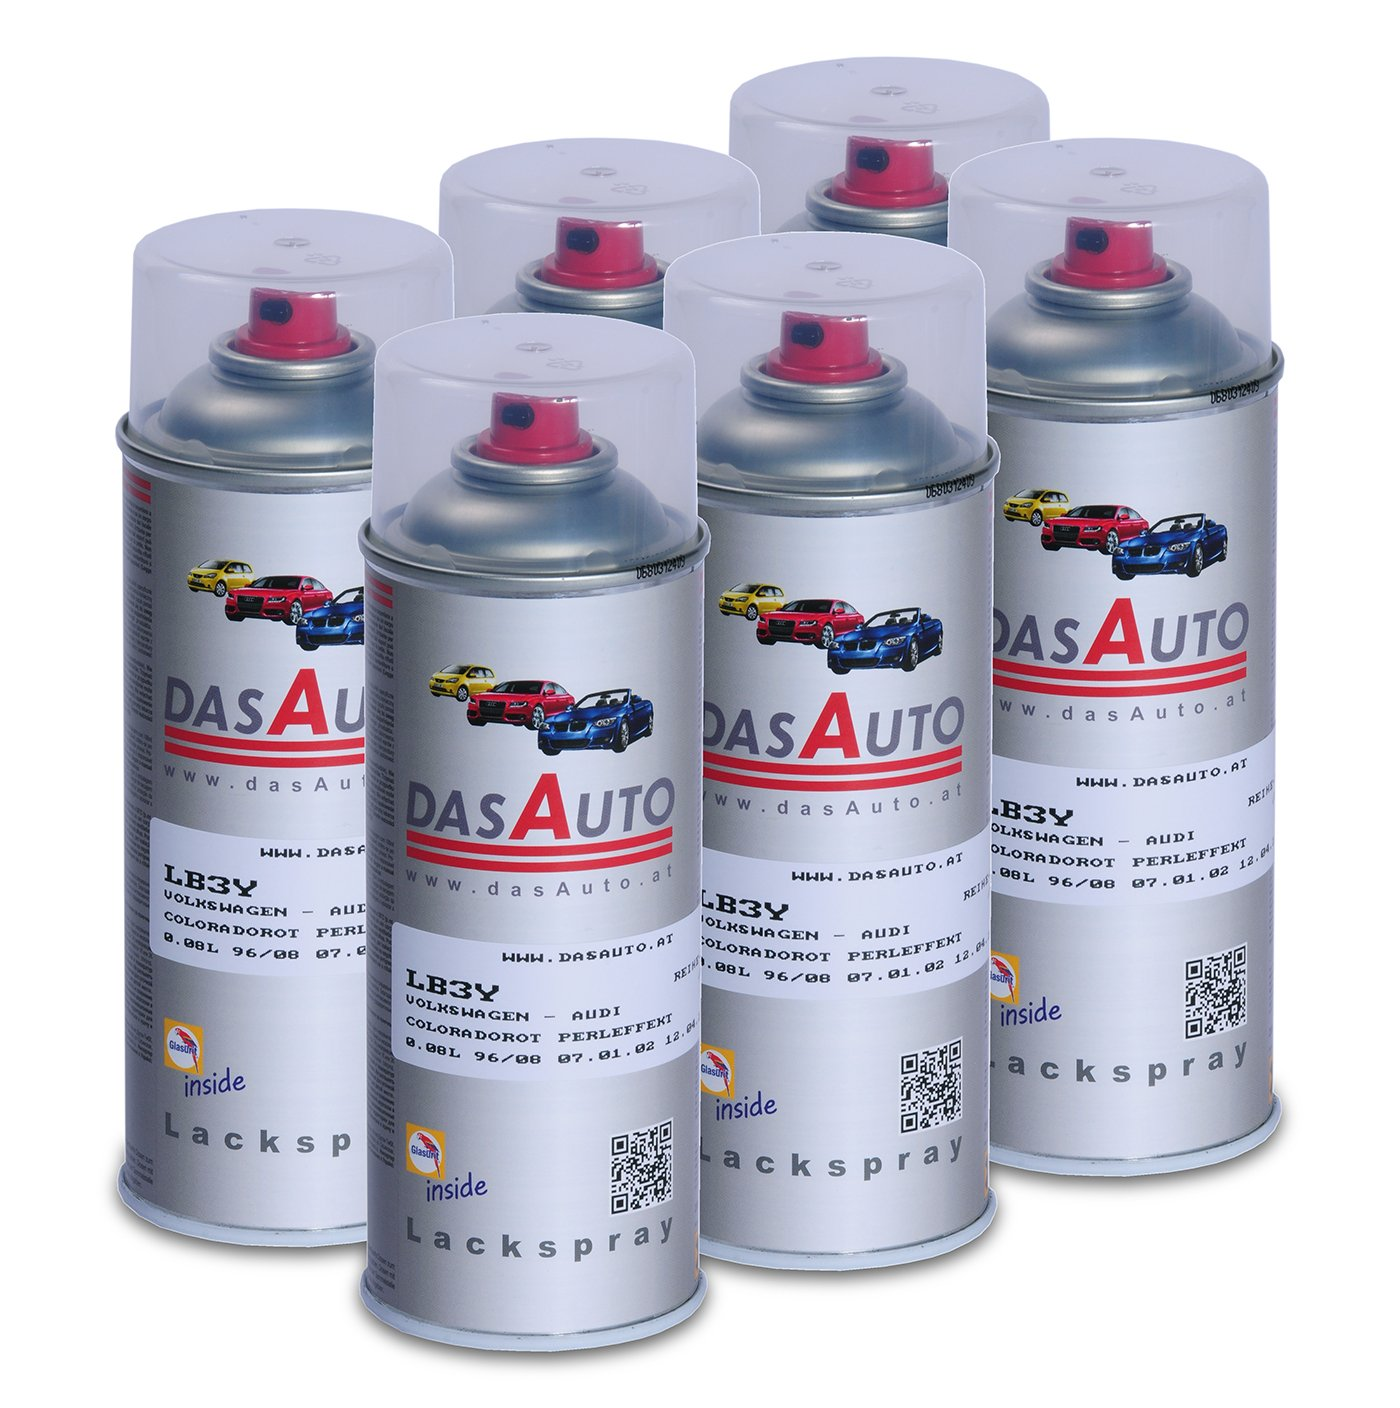 6 x dasauto Vernis Spray glasurit série 55 Inside 400 ml